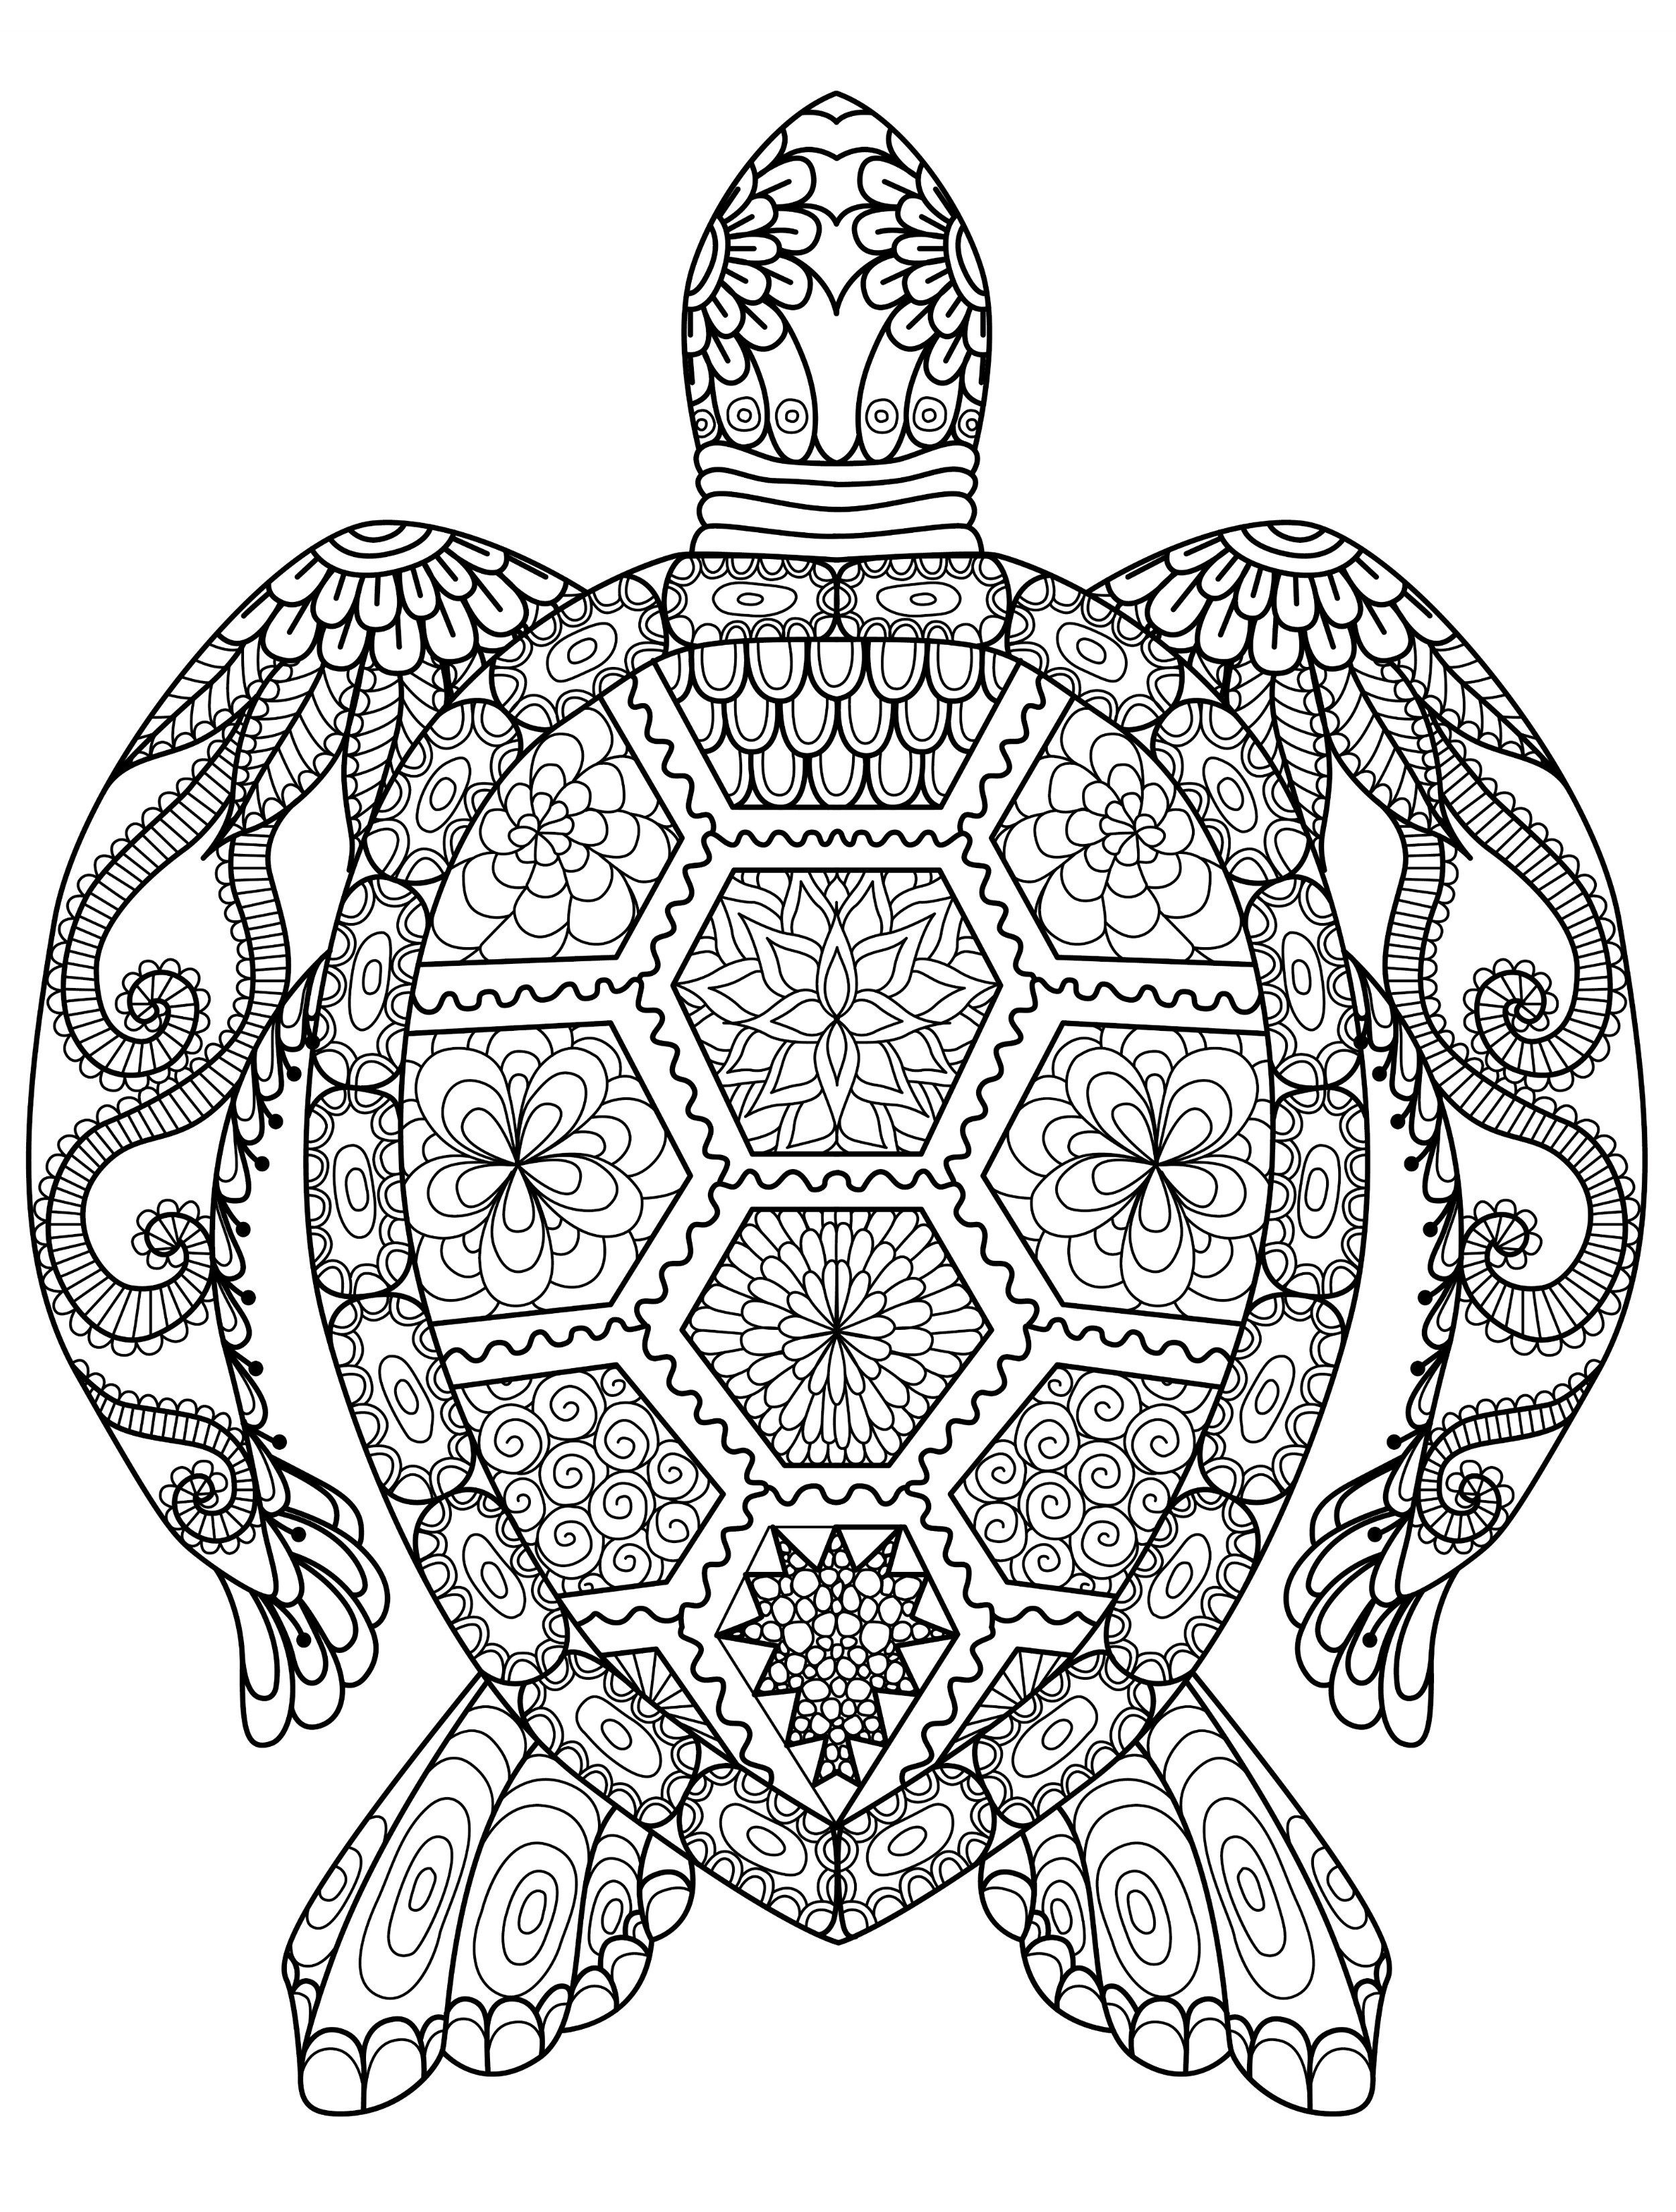 Coloring Pages : Excelent Zen Coloring Pages Free Printable Gorgeous - Free Printable Zen Coloring Pages